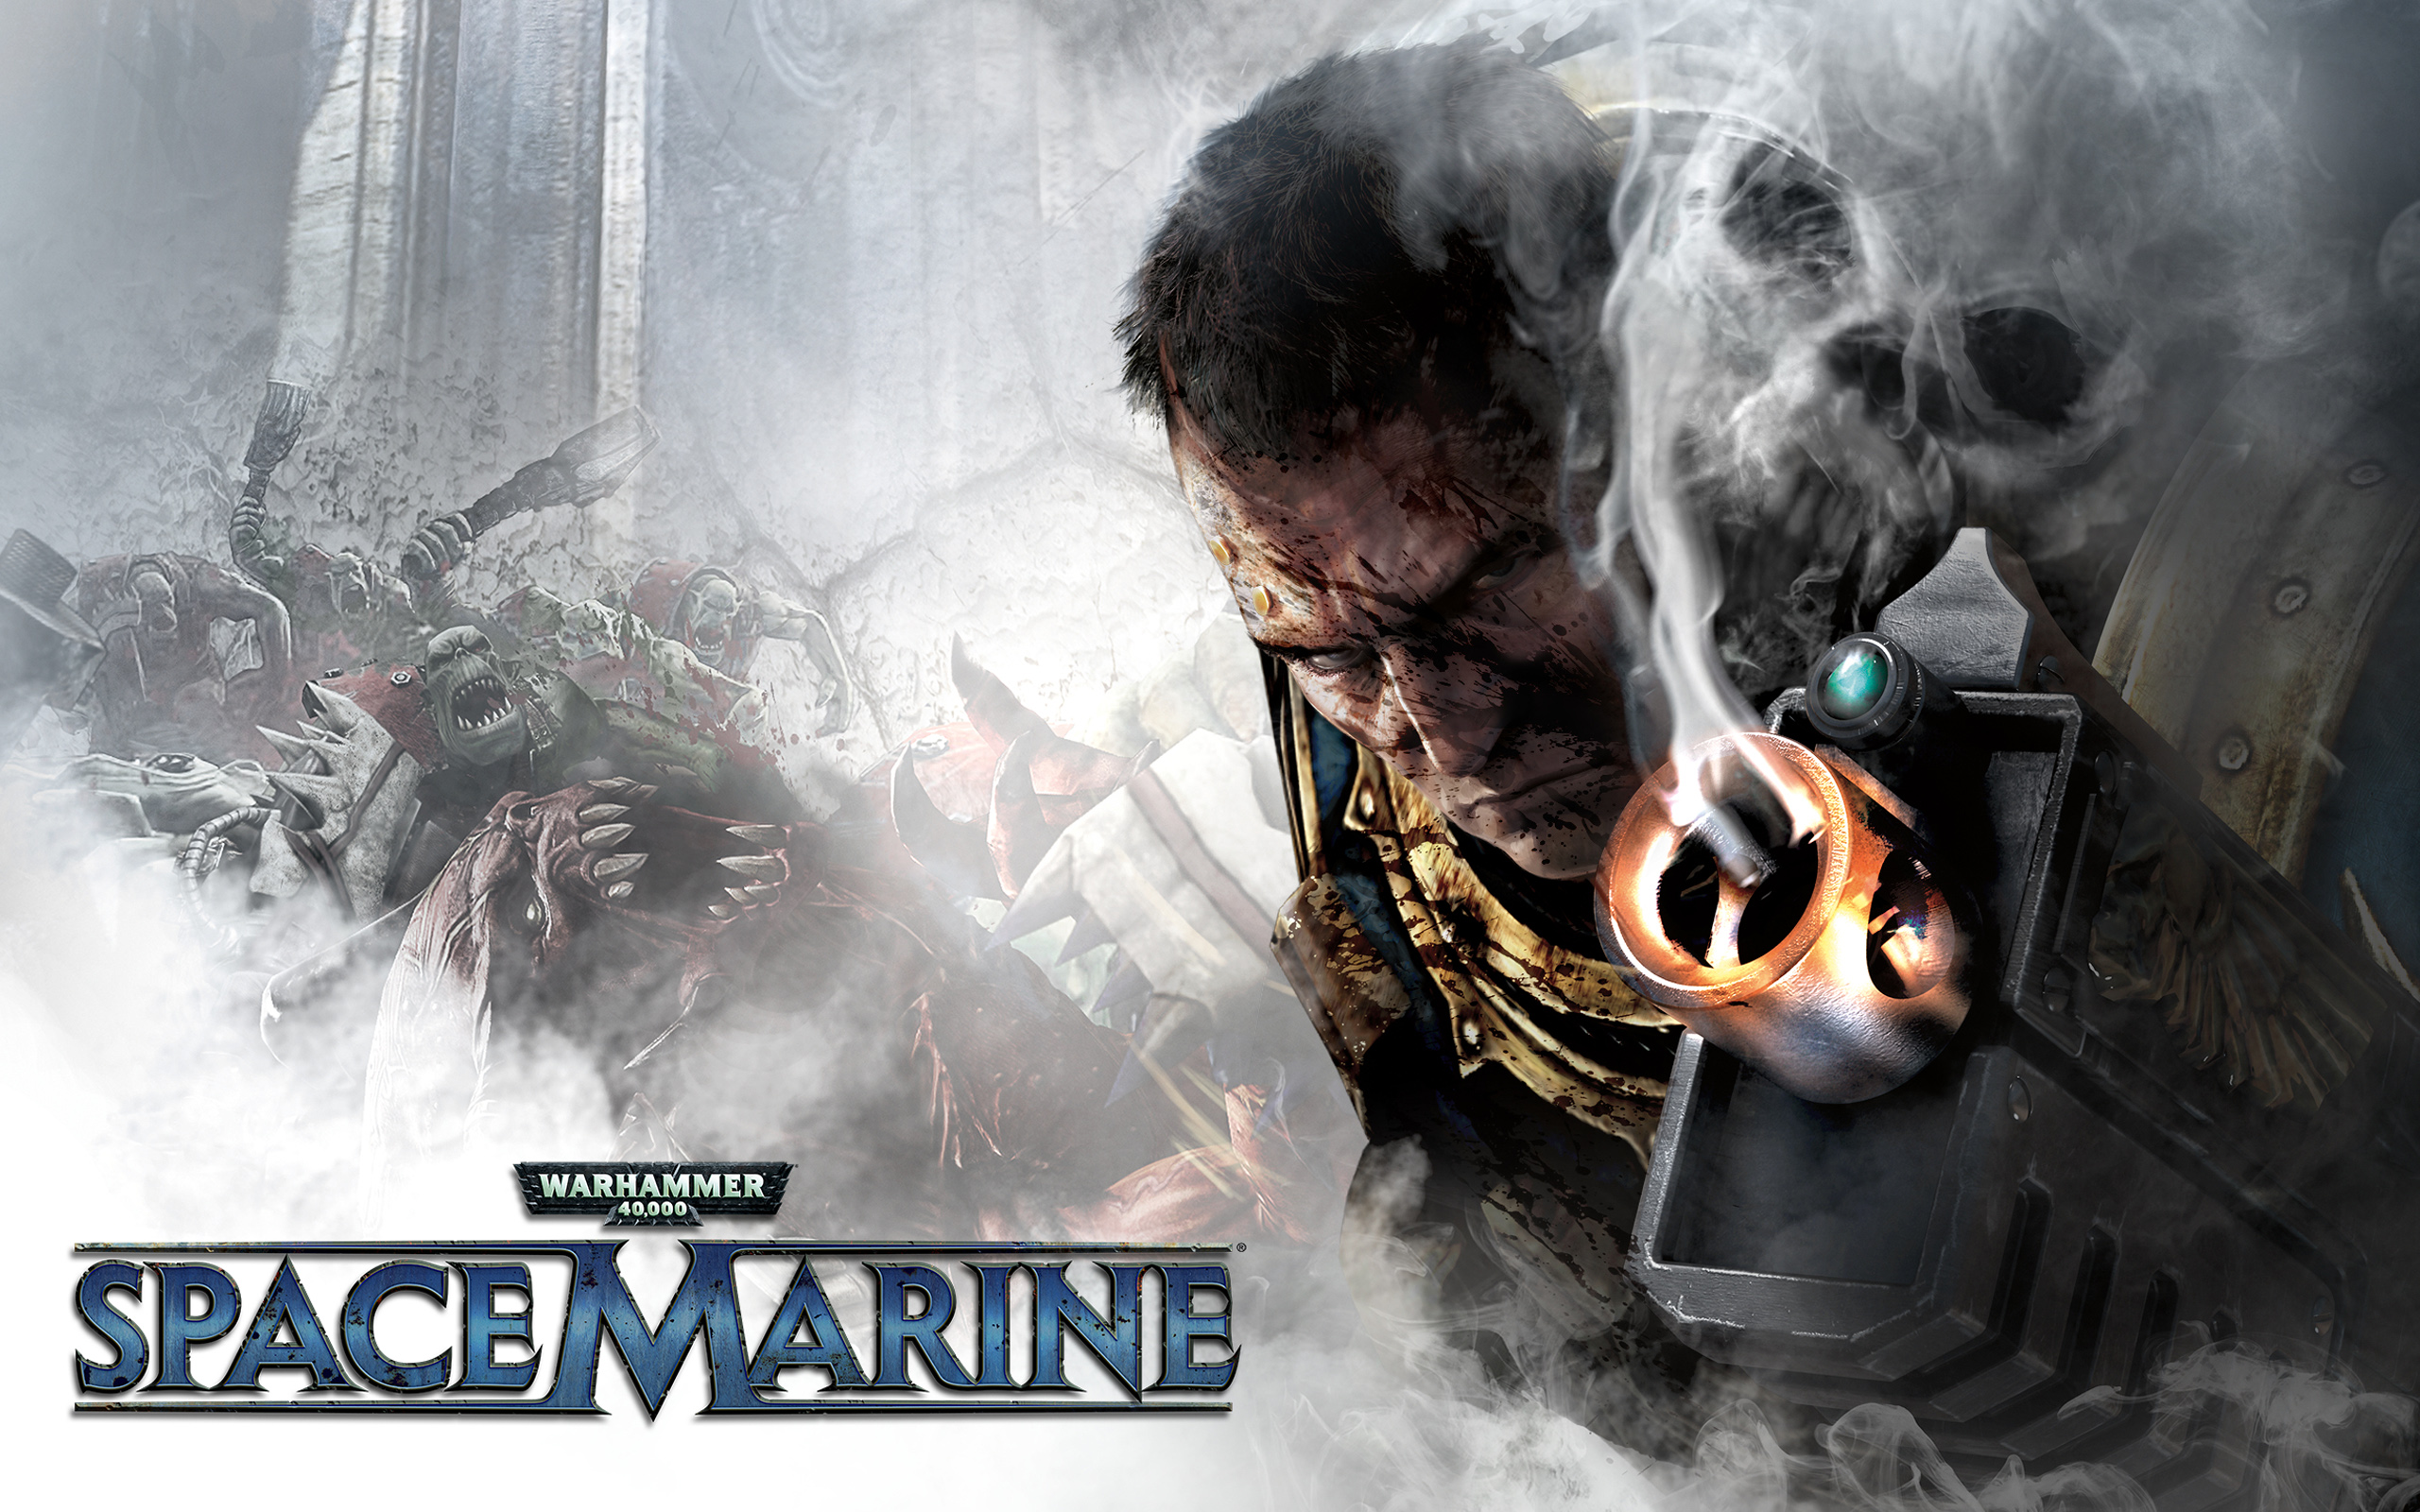 Warhammer Space Marine Game Wallpapers HD Wallpapers 2560x1600